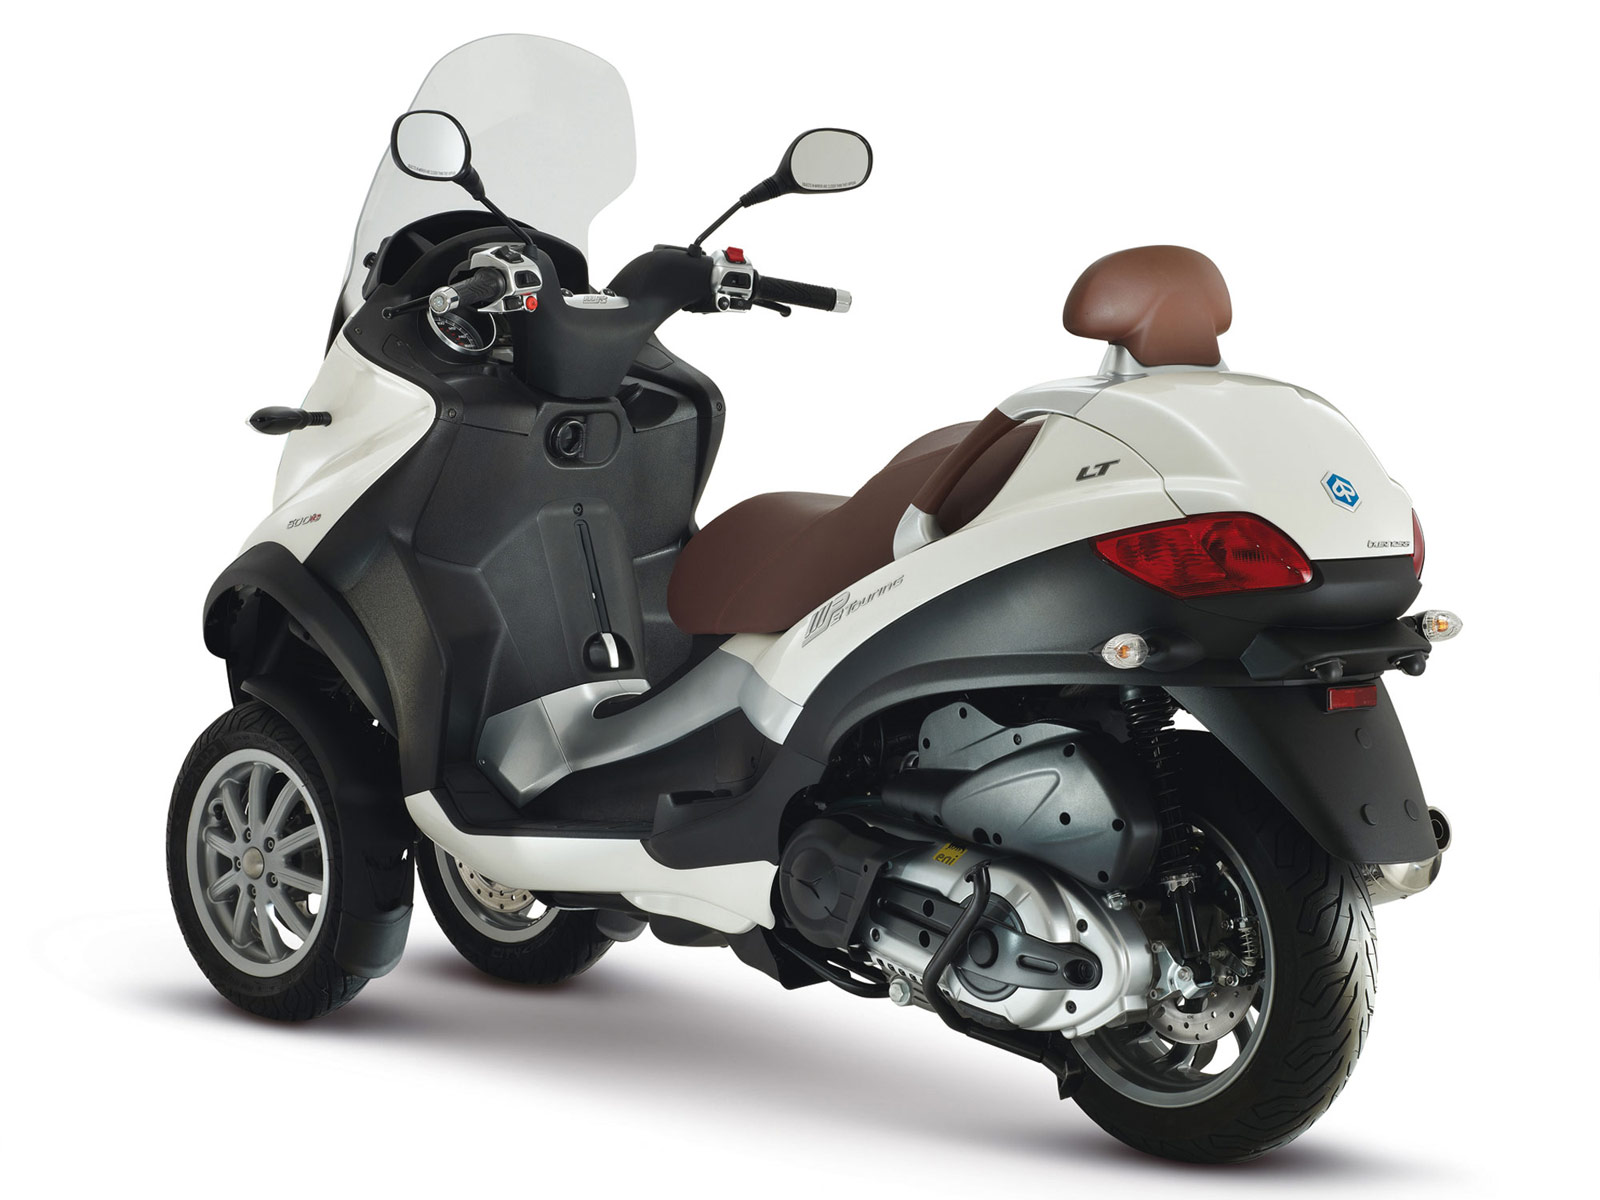 2012 piaggio mp3 touring lt500ie scooter insurance. Black Bedroom Furniture Sets. Home Design Ideas